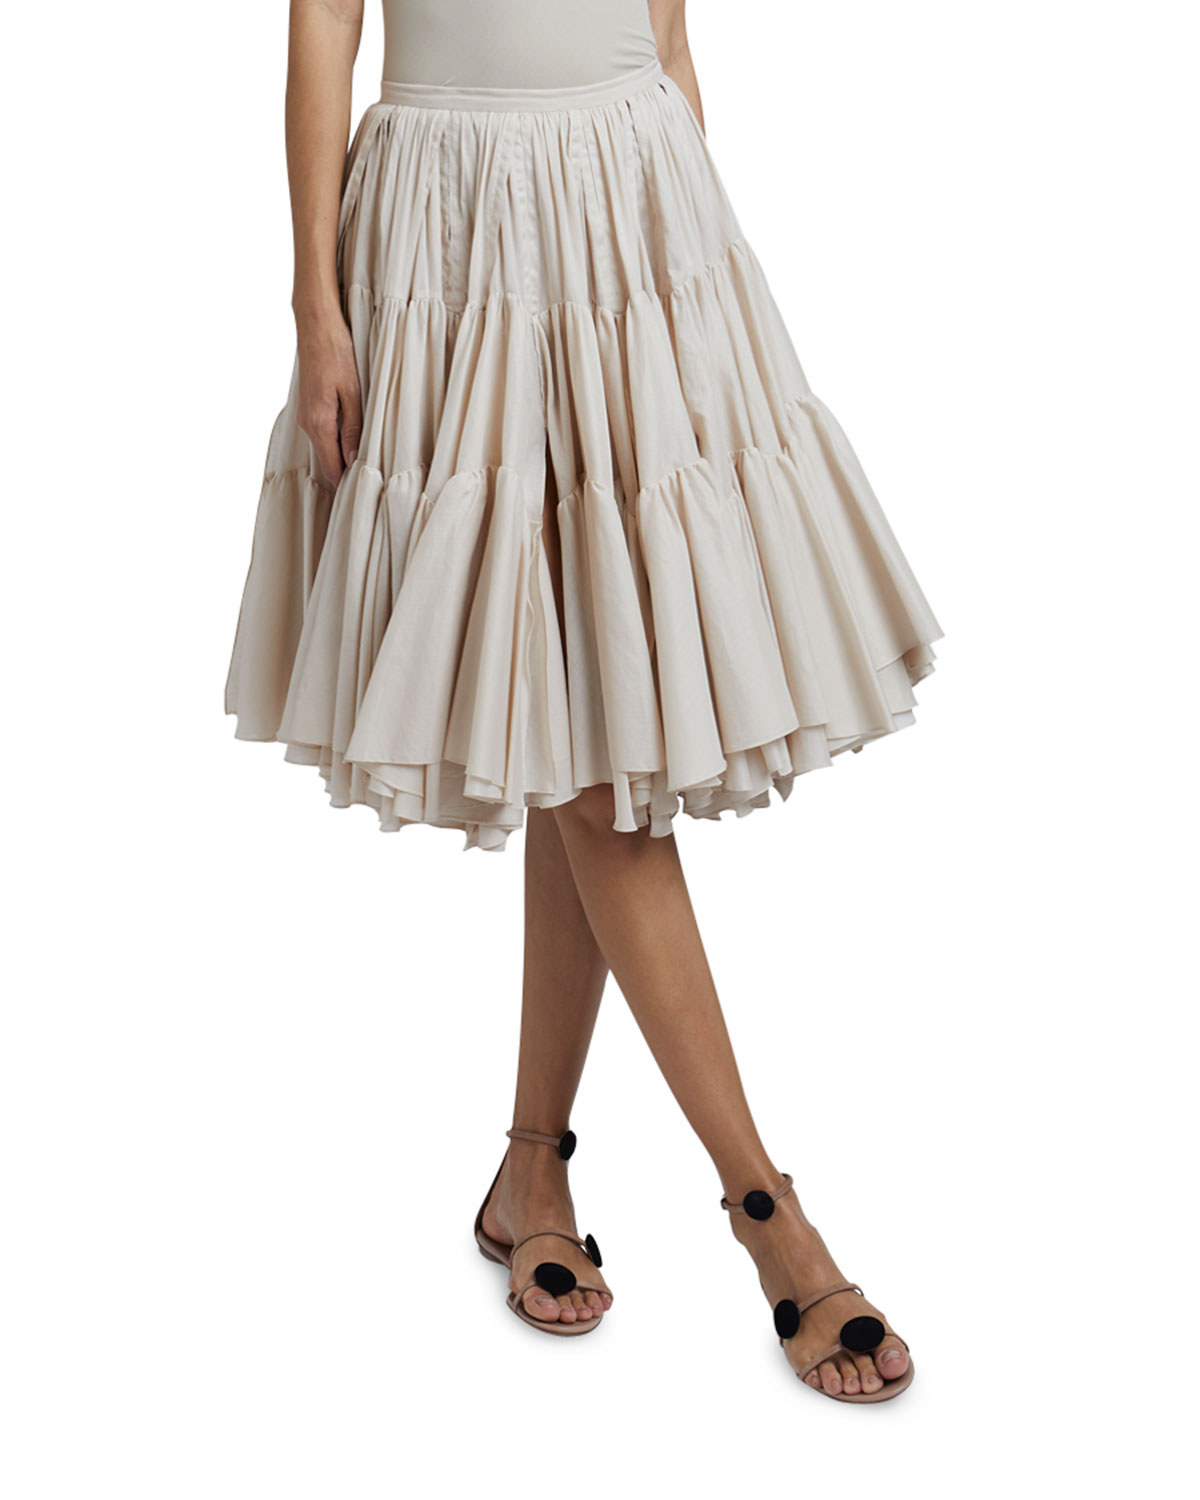 Tiered Pleated Cotton Skirt